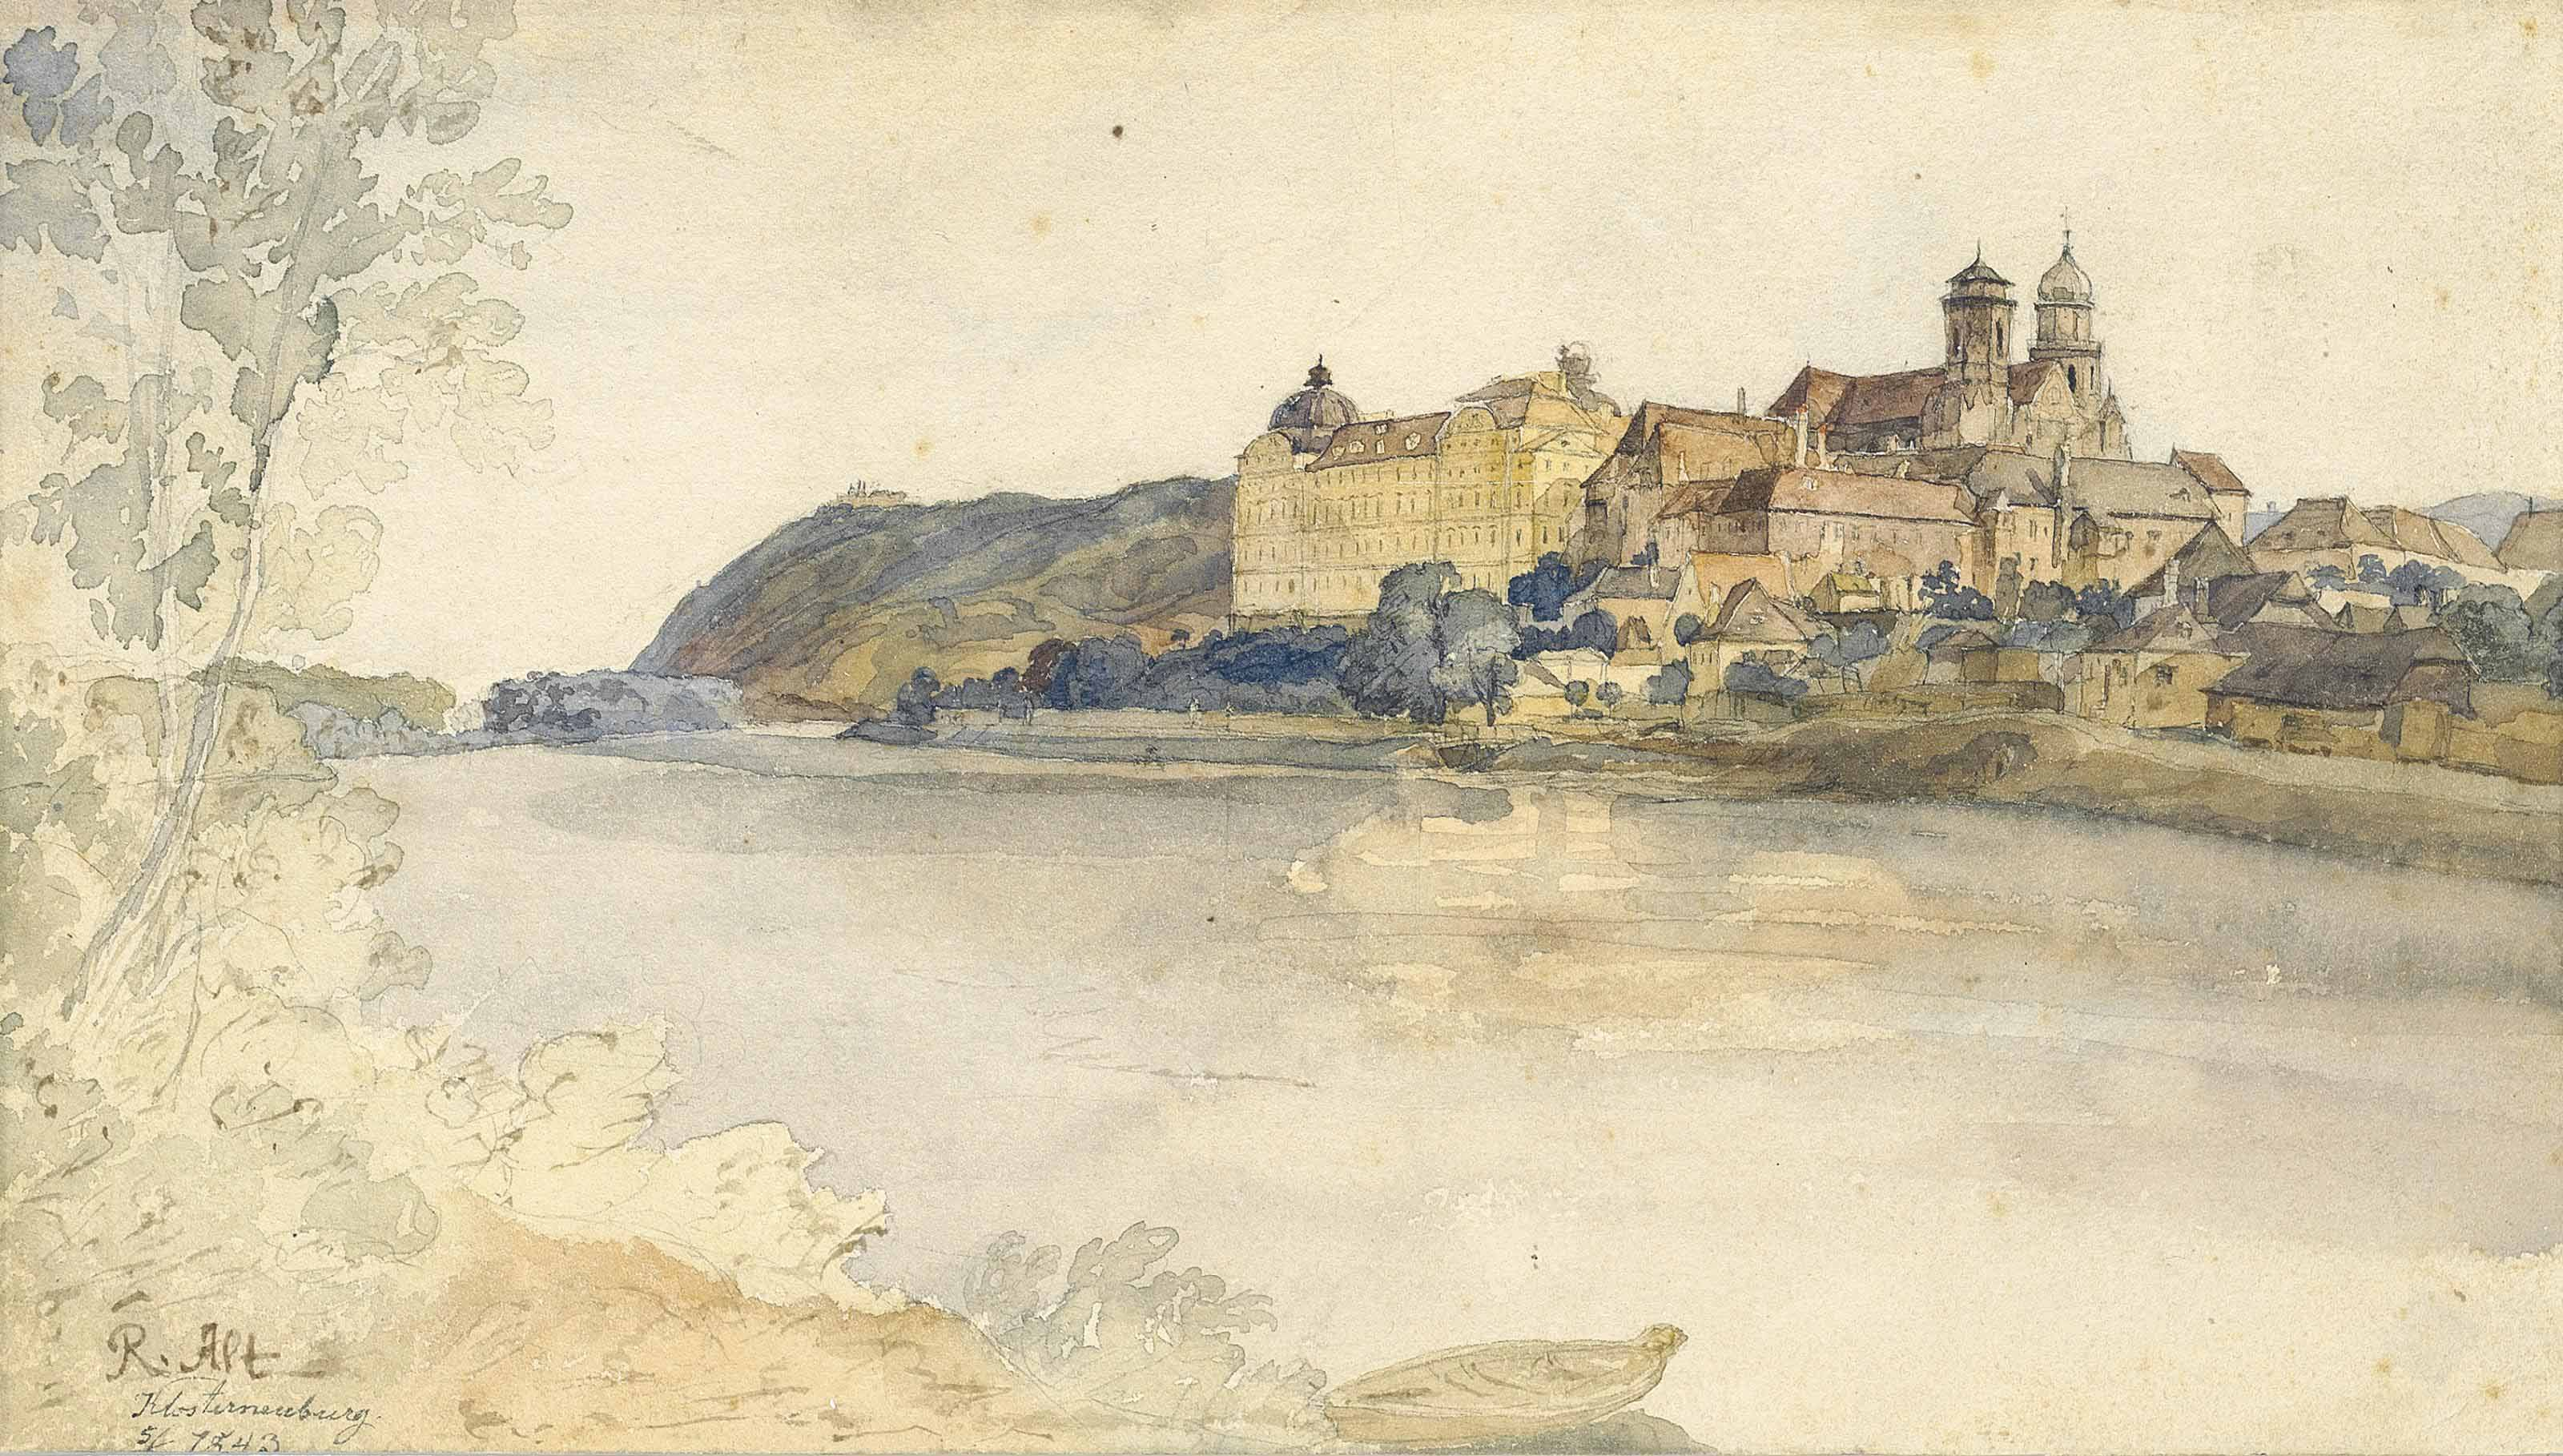 View of Klosterneuberg Monastery, on the Danube, near Vienna